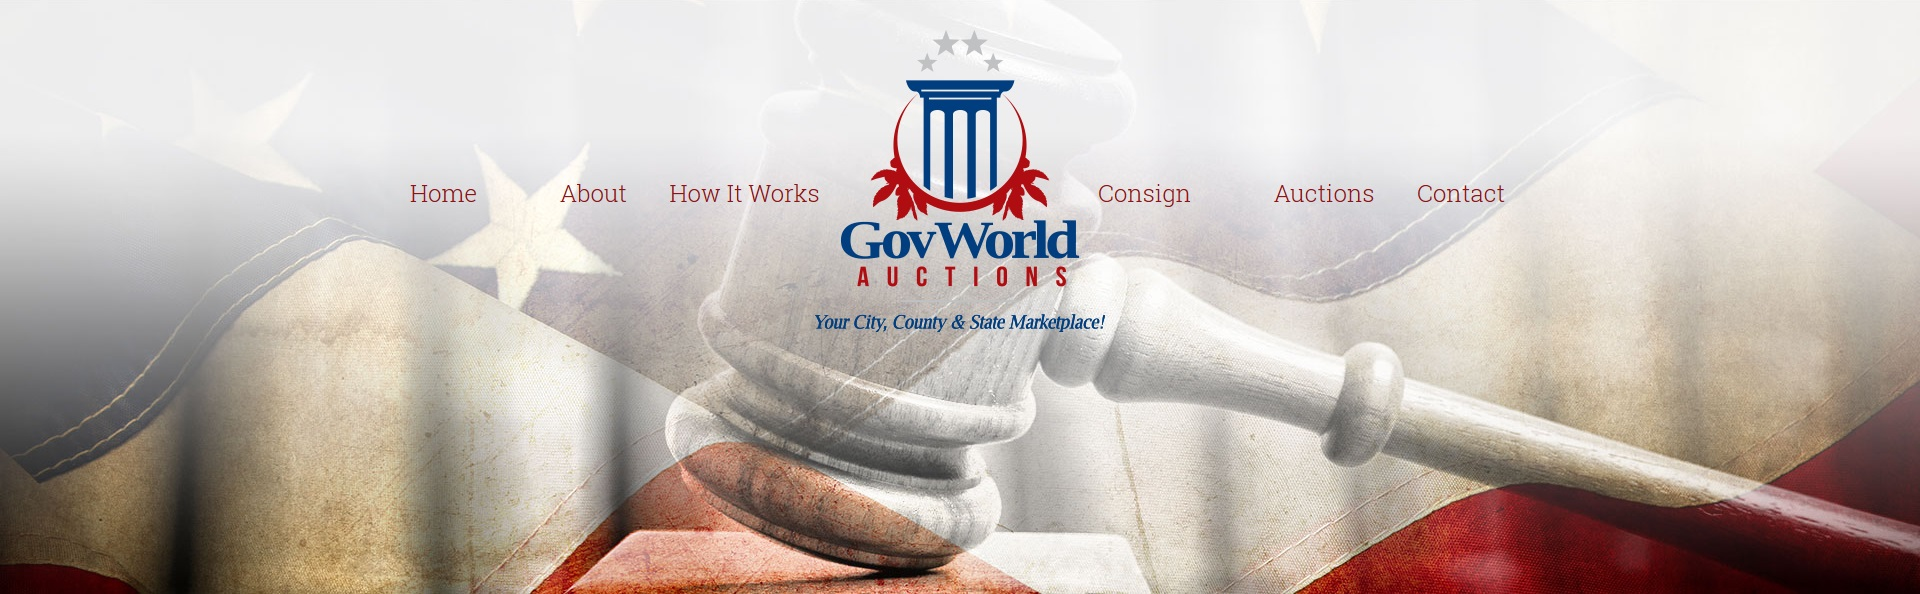 GovWorld Auctions